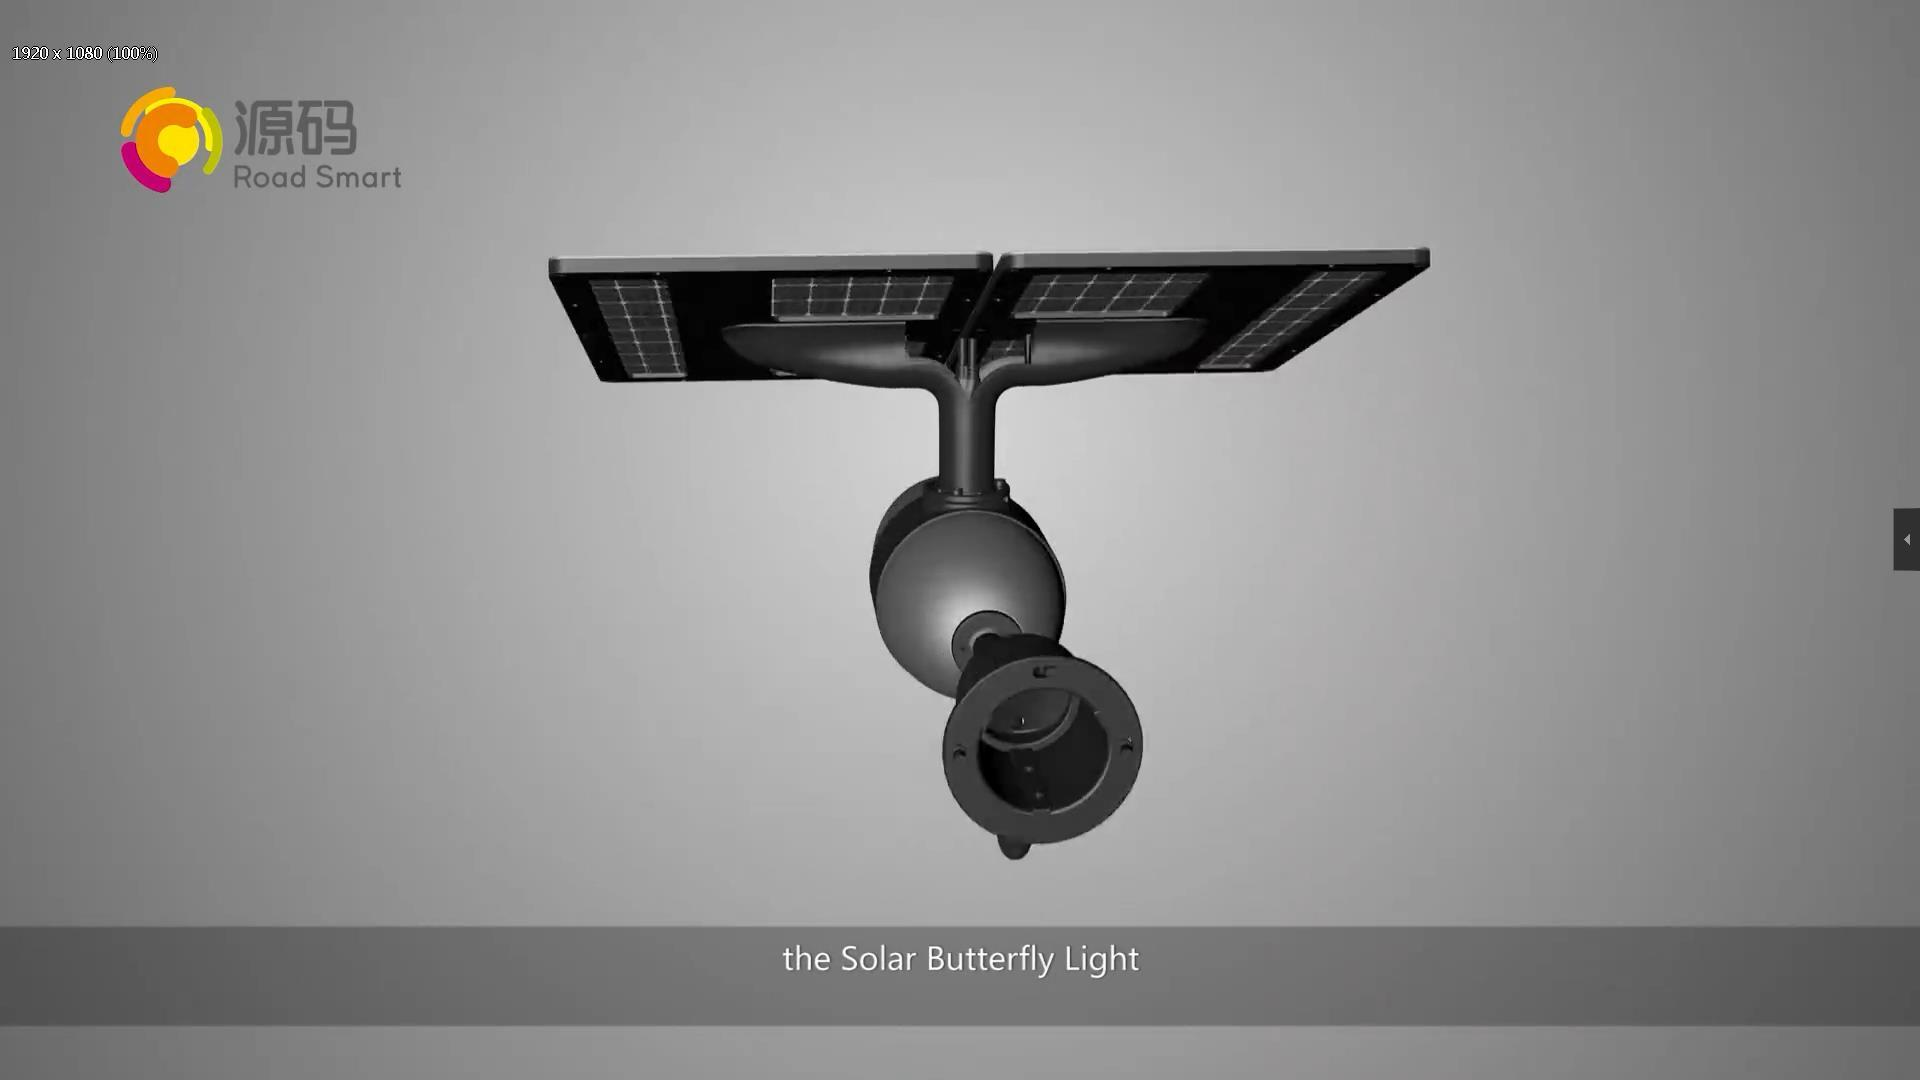 Solar Butterfly Light Intro